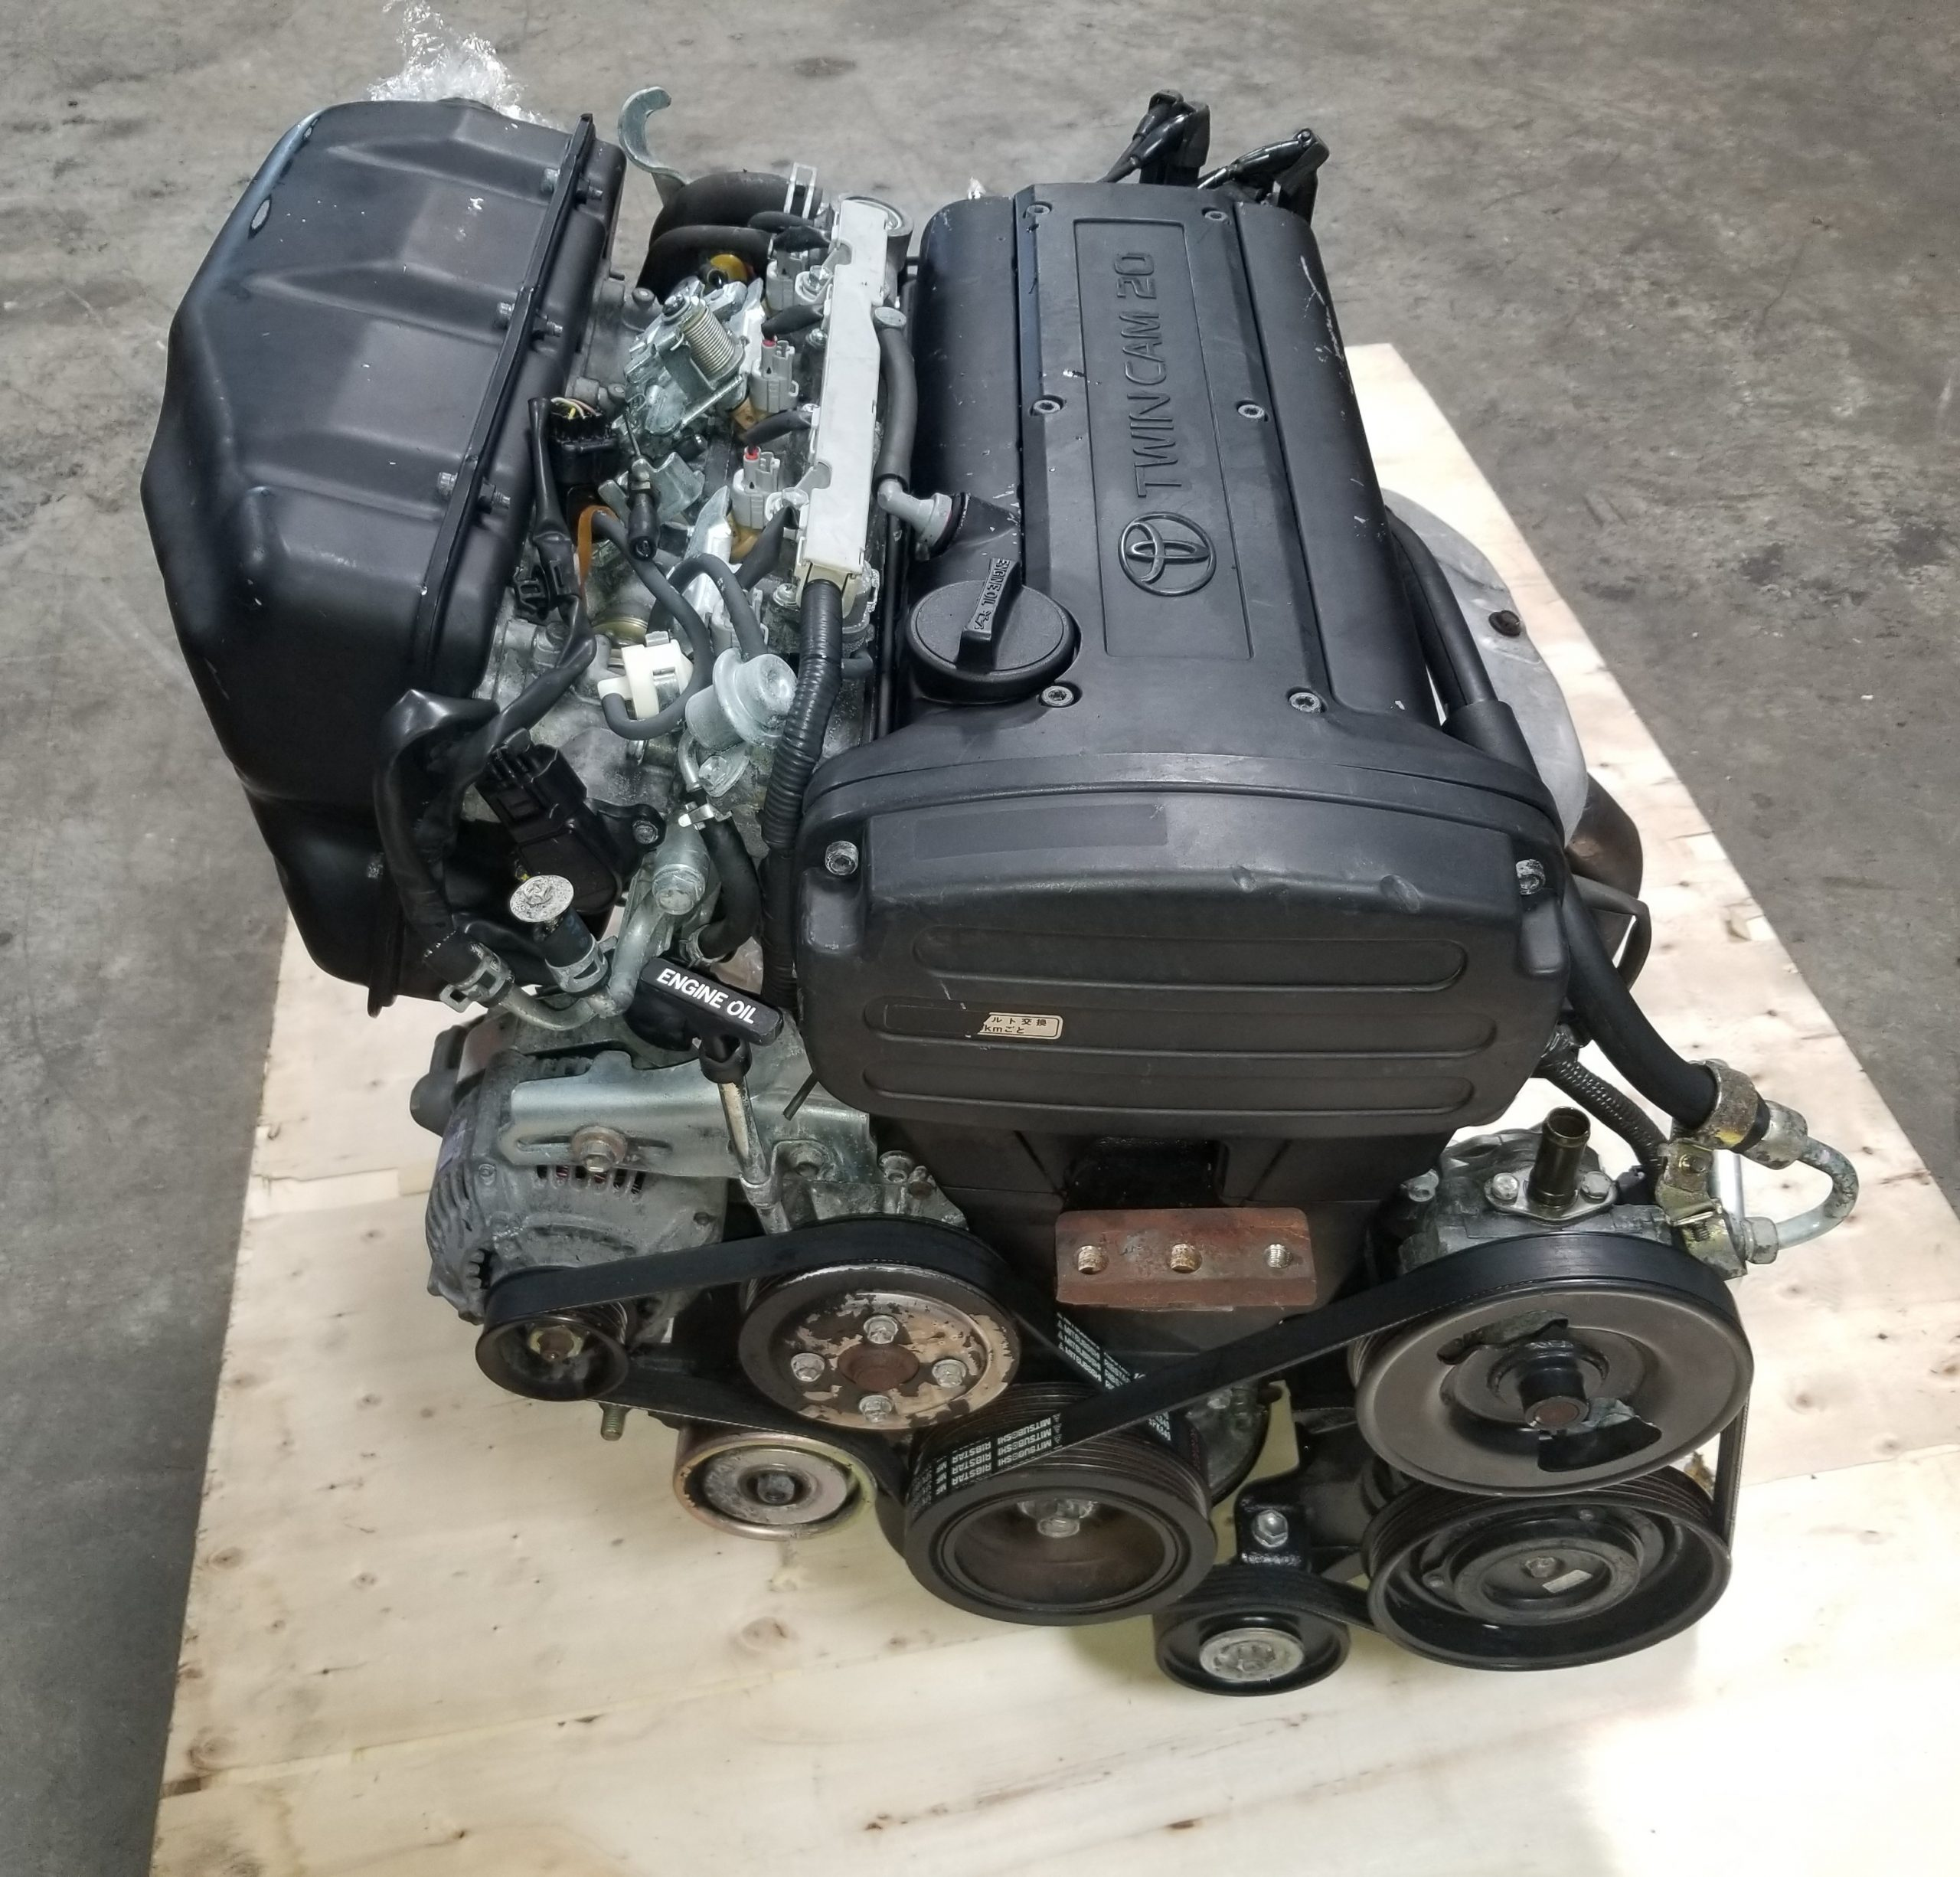 4age 20v Blacktop Engine With 5 Speed Manual Transmission